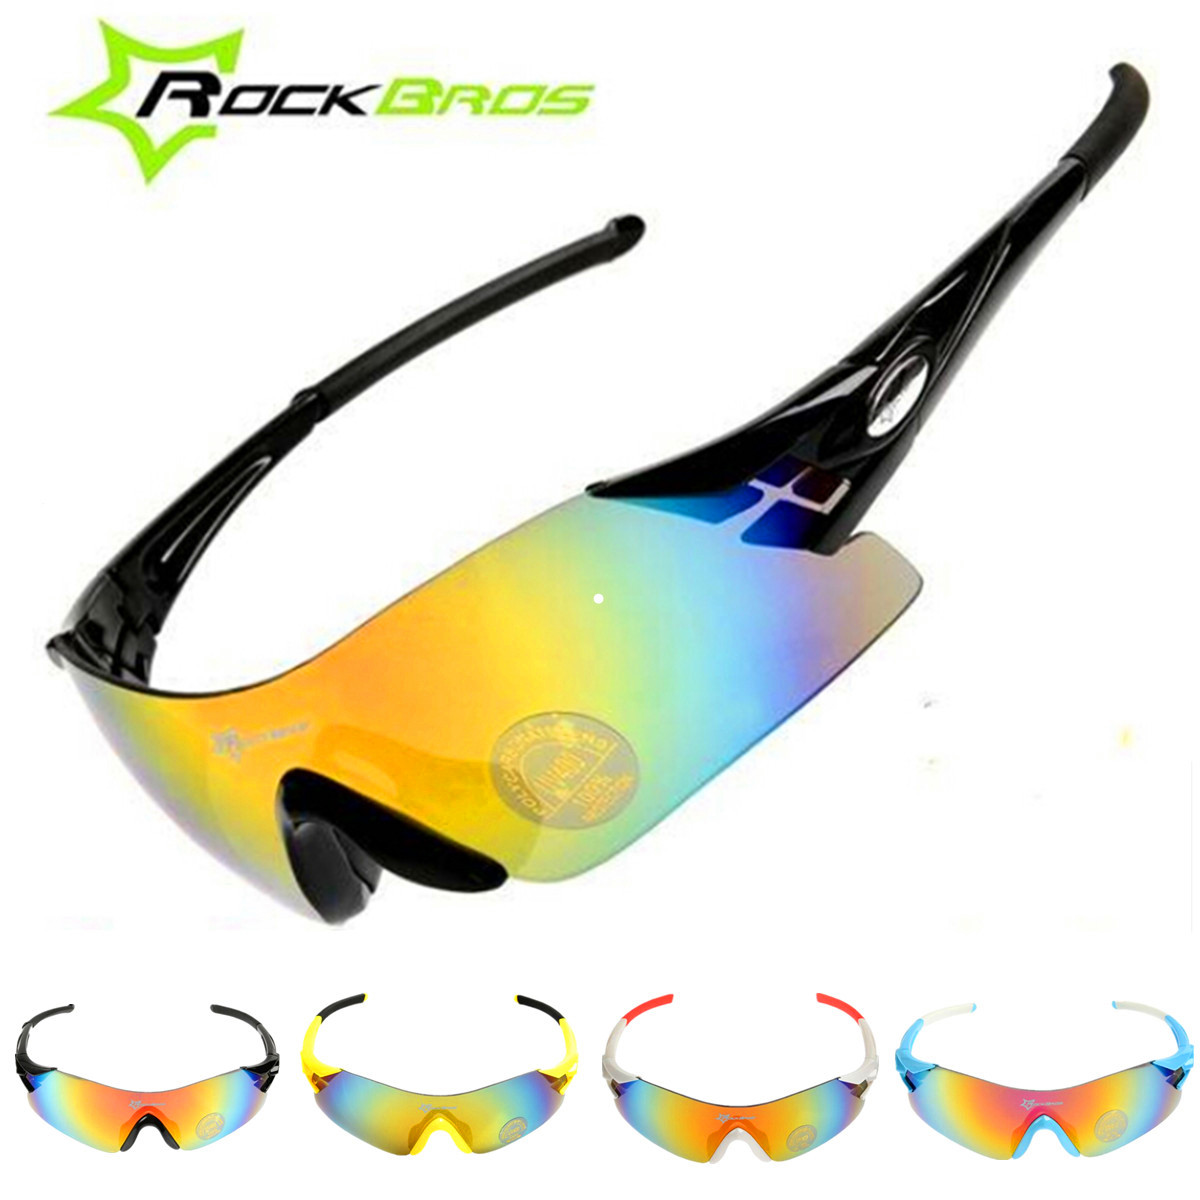 bike riding sunglasses  ROCKBROS Sport Cycling Bicycle Bike Riding Sun Glasses Eyewear ...